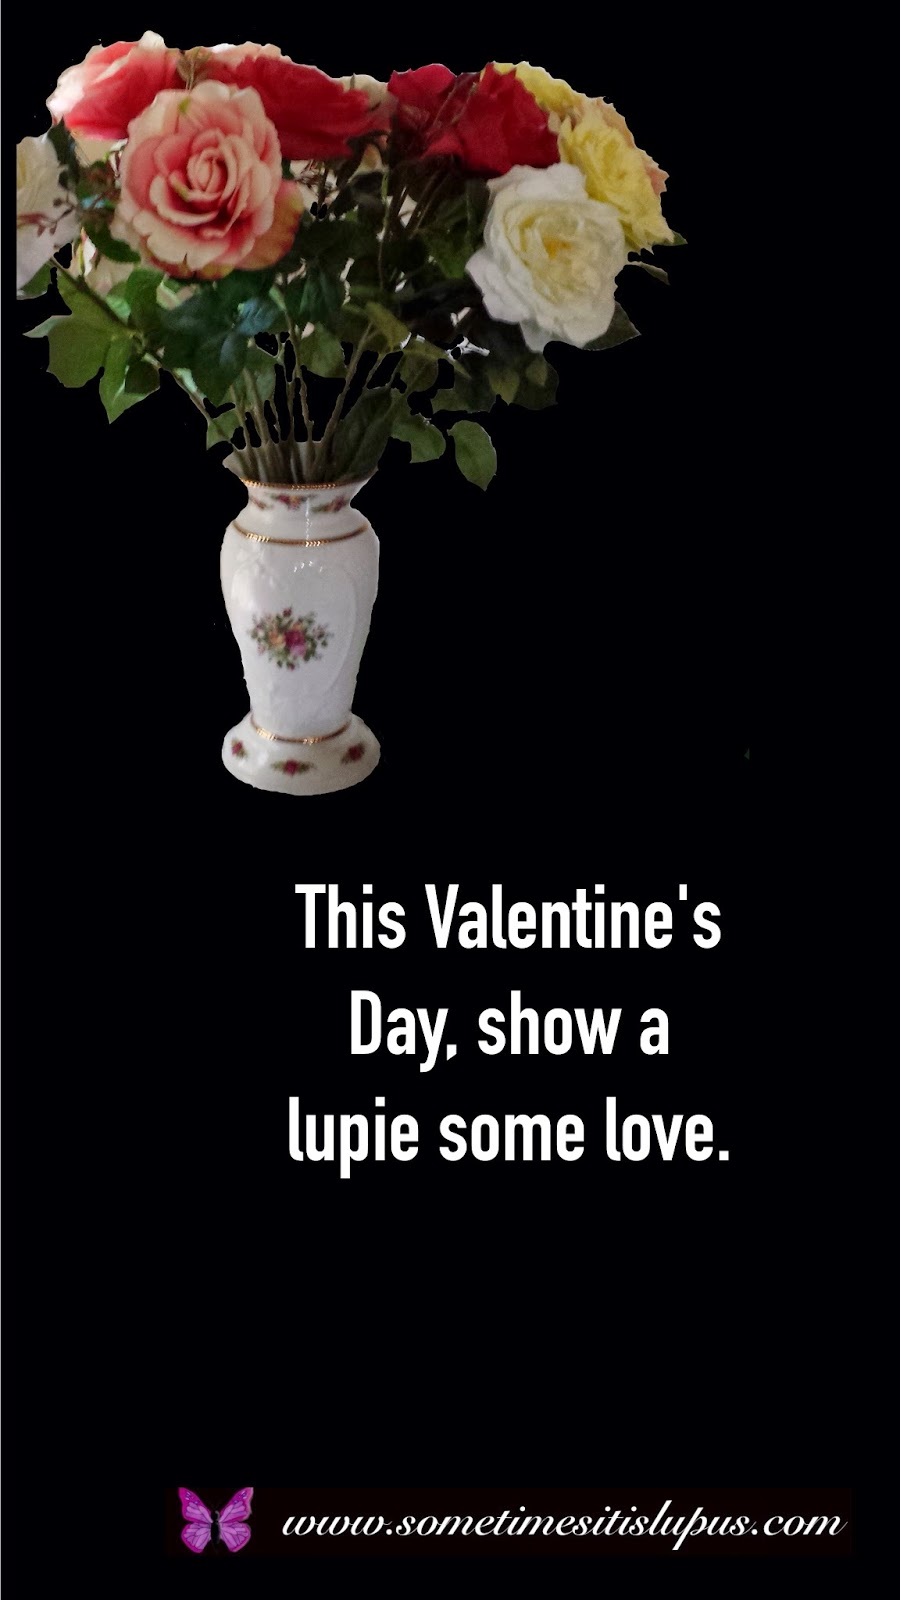 "Image: vase of roses on black background. White text; ""This Valentine's Day, show a lupie some love."""